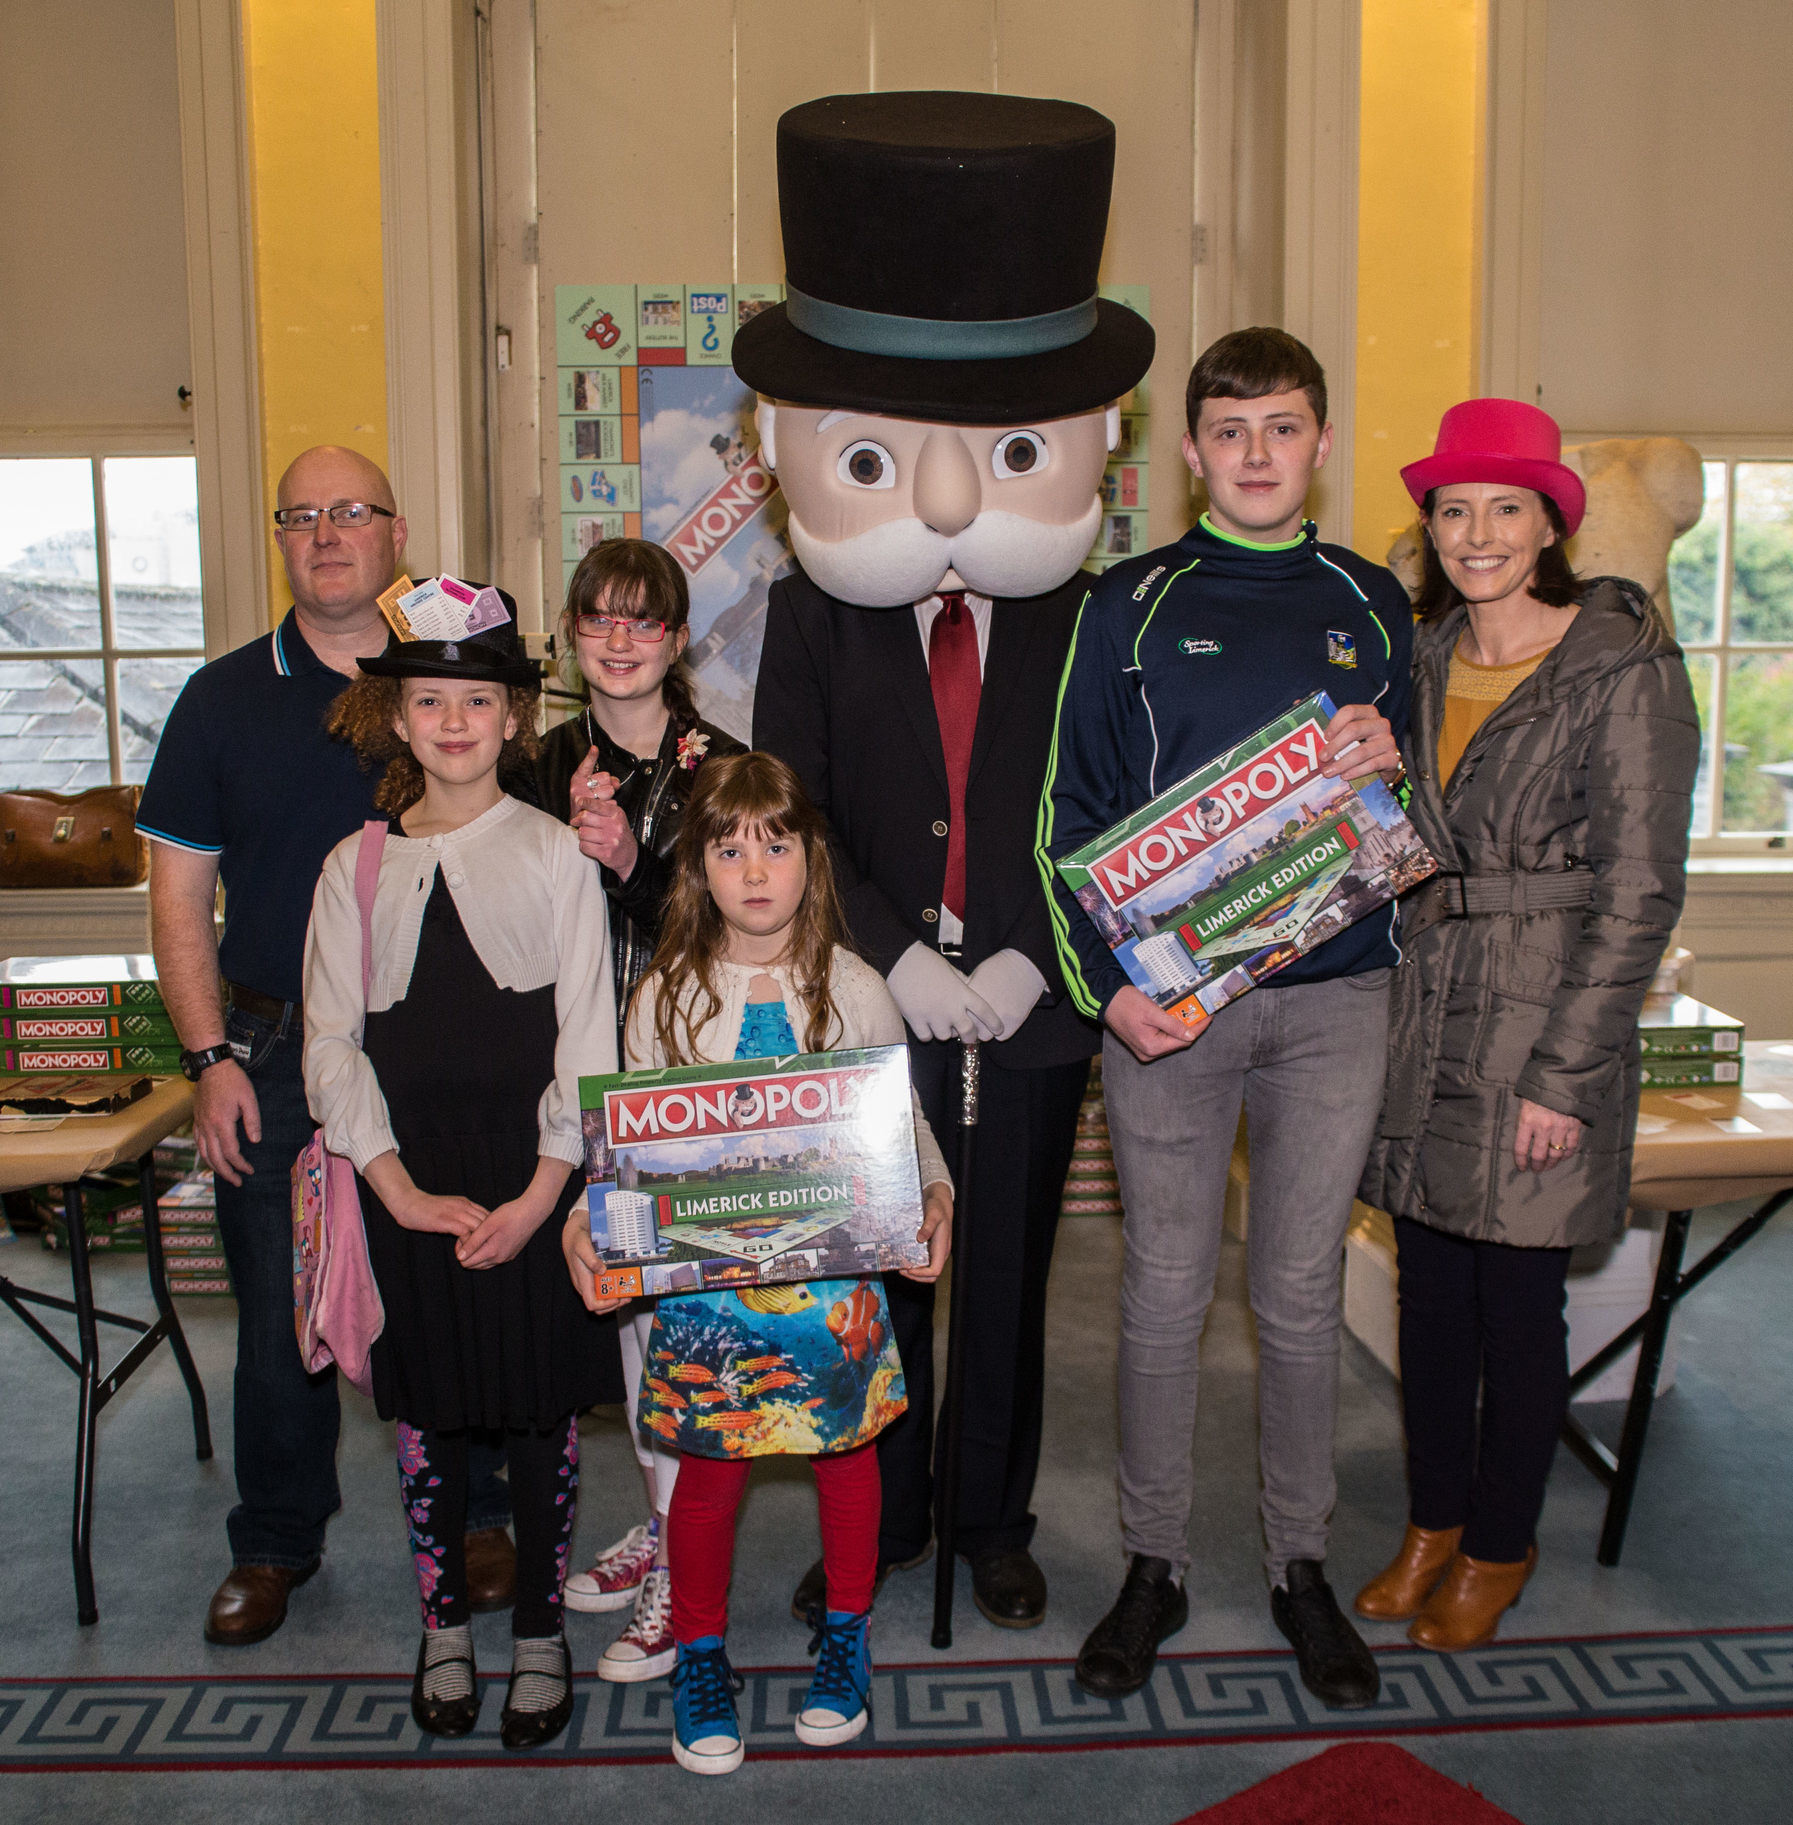 Limerick Monopoly Launch huge success at Hunt Museum. VIP members of the public were invited to be the first people to play Monopoly Limerick. Picture: Cian Reinhardt/ilovelimerick